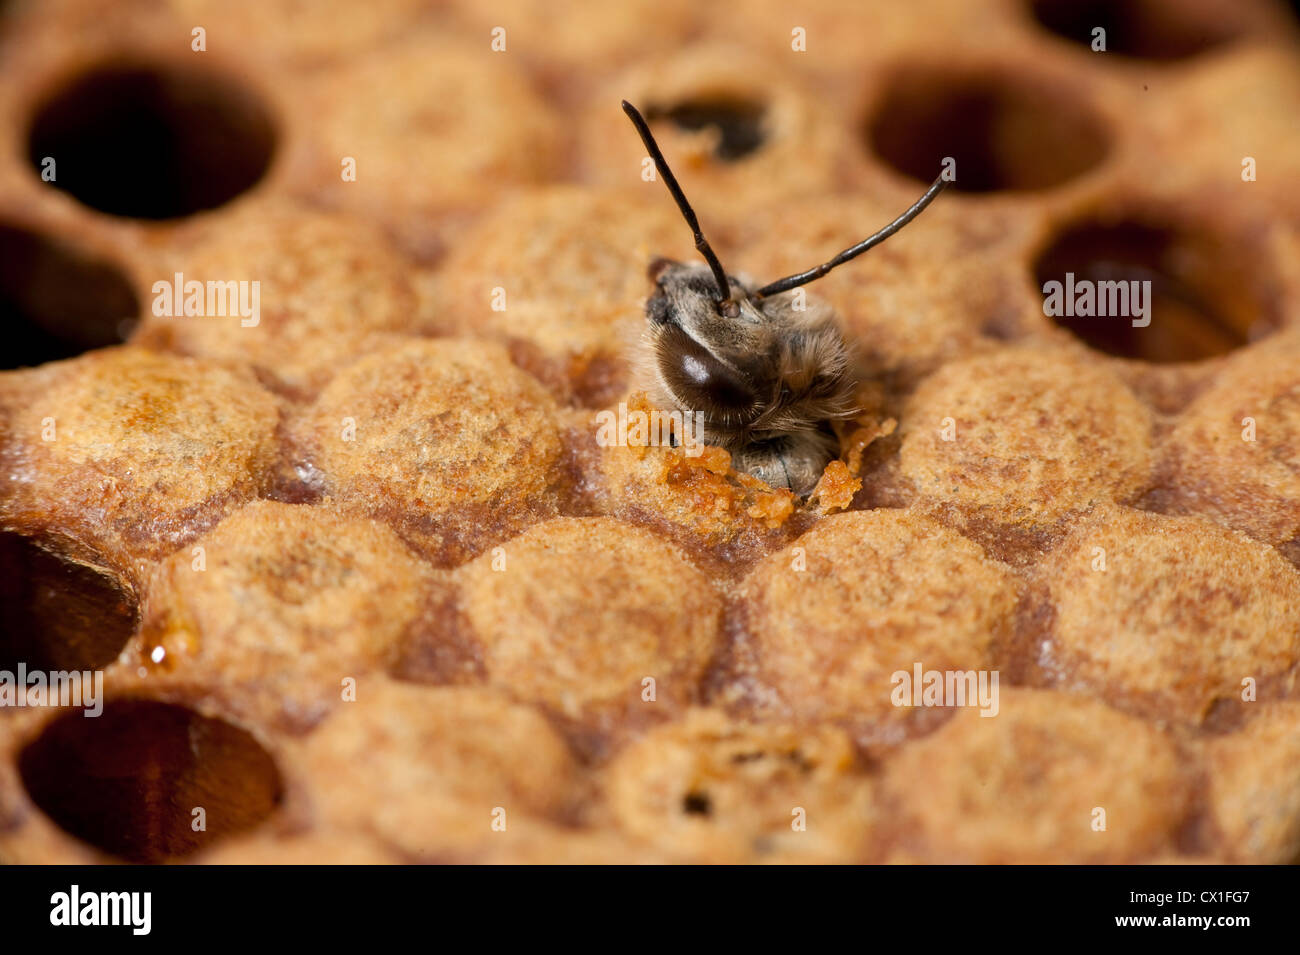 Worker Honey Bee Emerging Apis mellifera Kent UK hatching from sealed cell in brood chamber adult - Stock Image